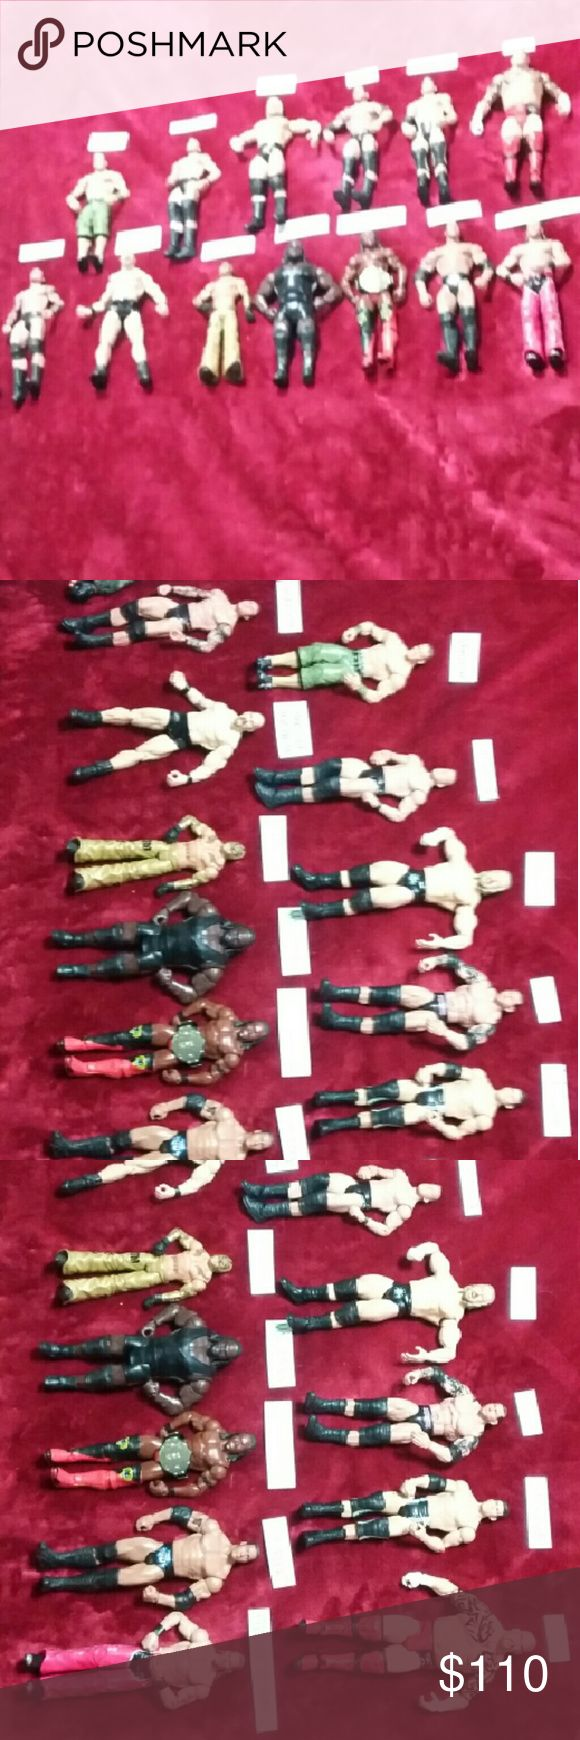 "WWE wrestler Top left to right. John Cena, Ted Dibiase Jr., Triple H, Batista, Cody Rhodes, Tensai. Bottom left to right.  Randy Orton, Steve Austin, Rey Mysterio,  Mark Henry, Kofi Kingston, ""The Rock"", and Shawn Michaels. Every wrestler are in excellent condition,  except for Mark Henry right foot was chewed half way off by the dog,  and The Rock left foot is slightly chewed by the dog. Everyone else is in perfect condition. Have any other questions please don't hesitate. I can separate if…"